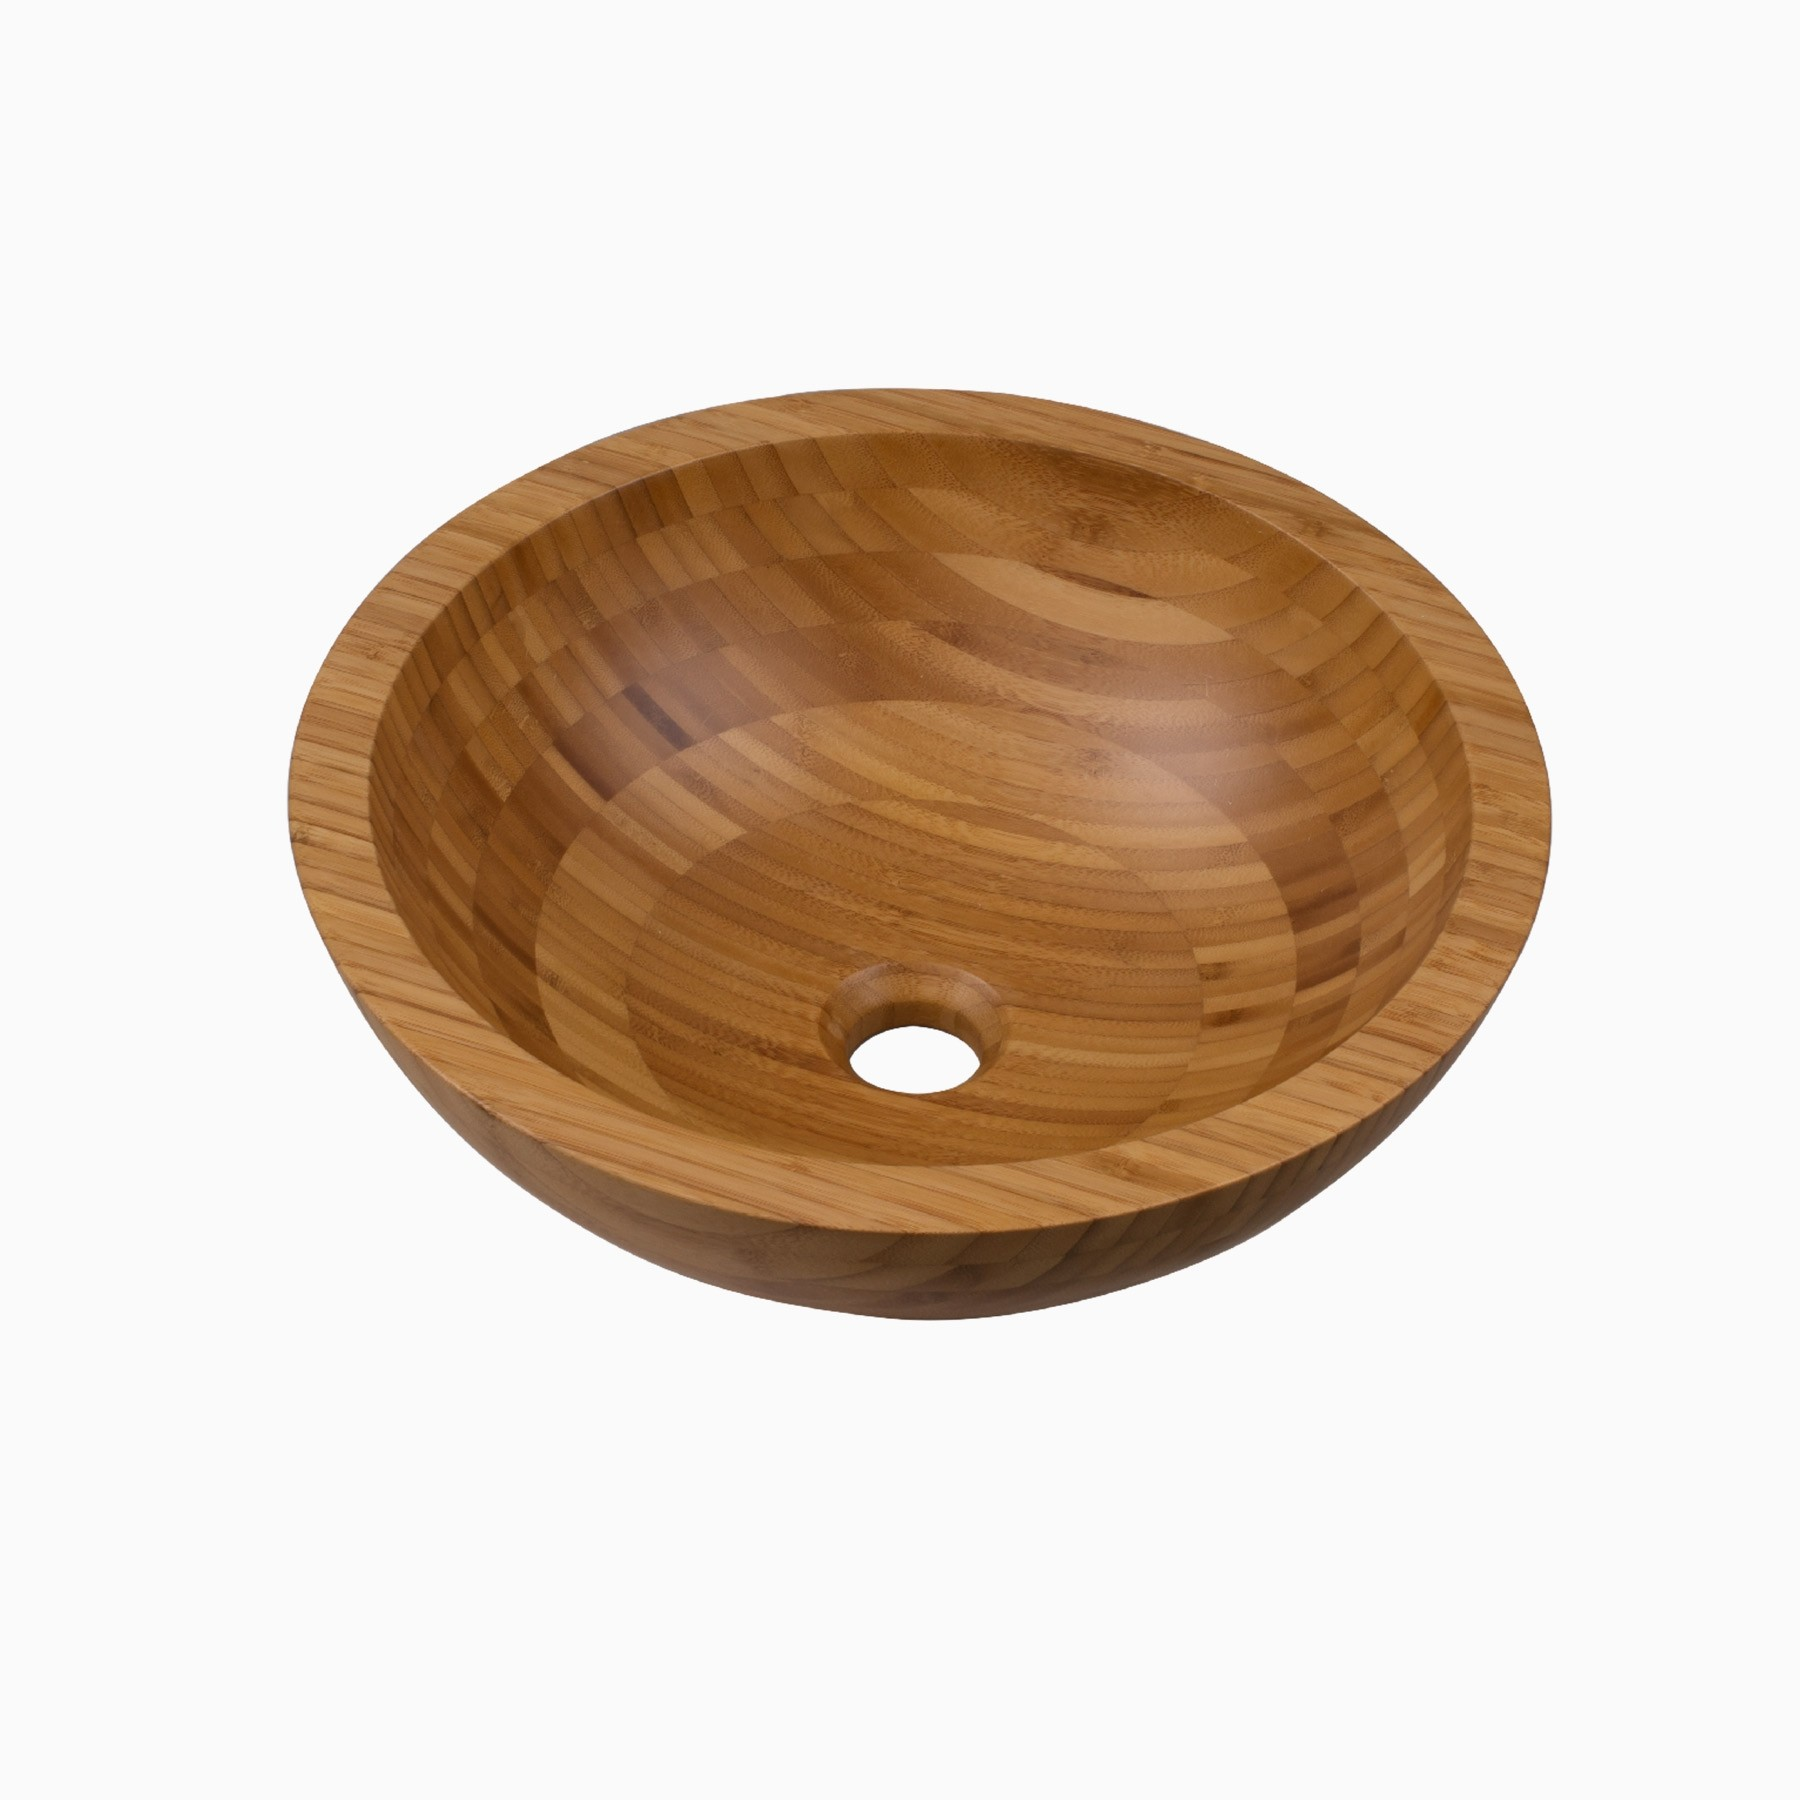 Aria Solid Bamboo Bathroom Vessel Sink, Round, Transitional